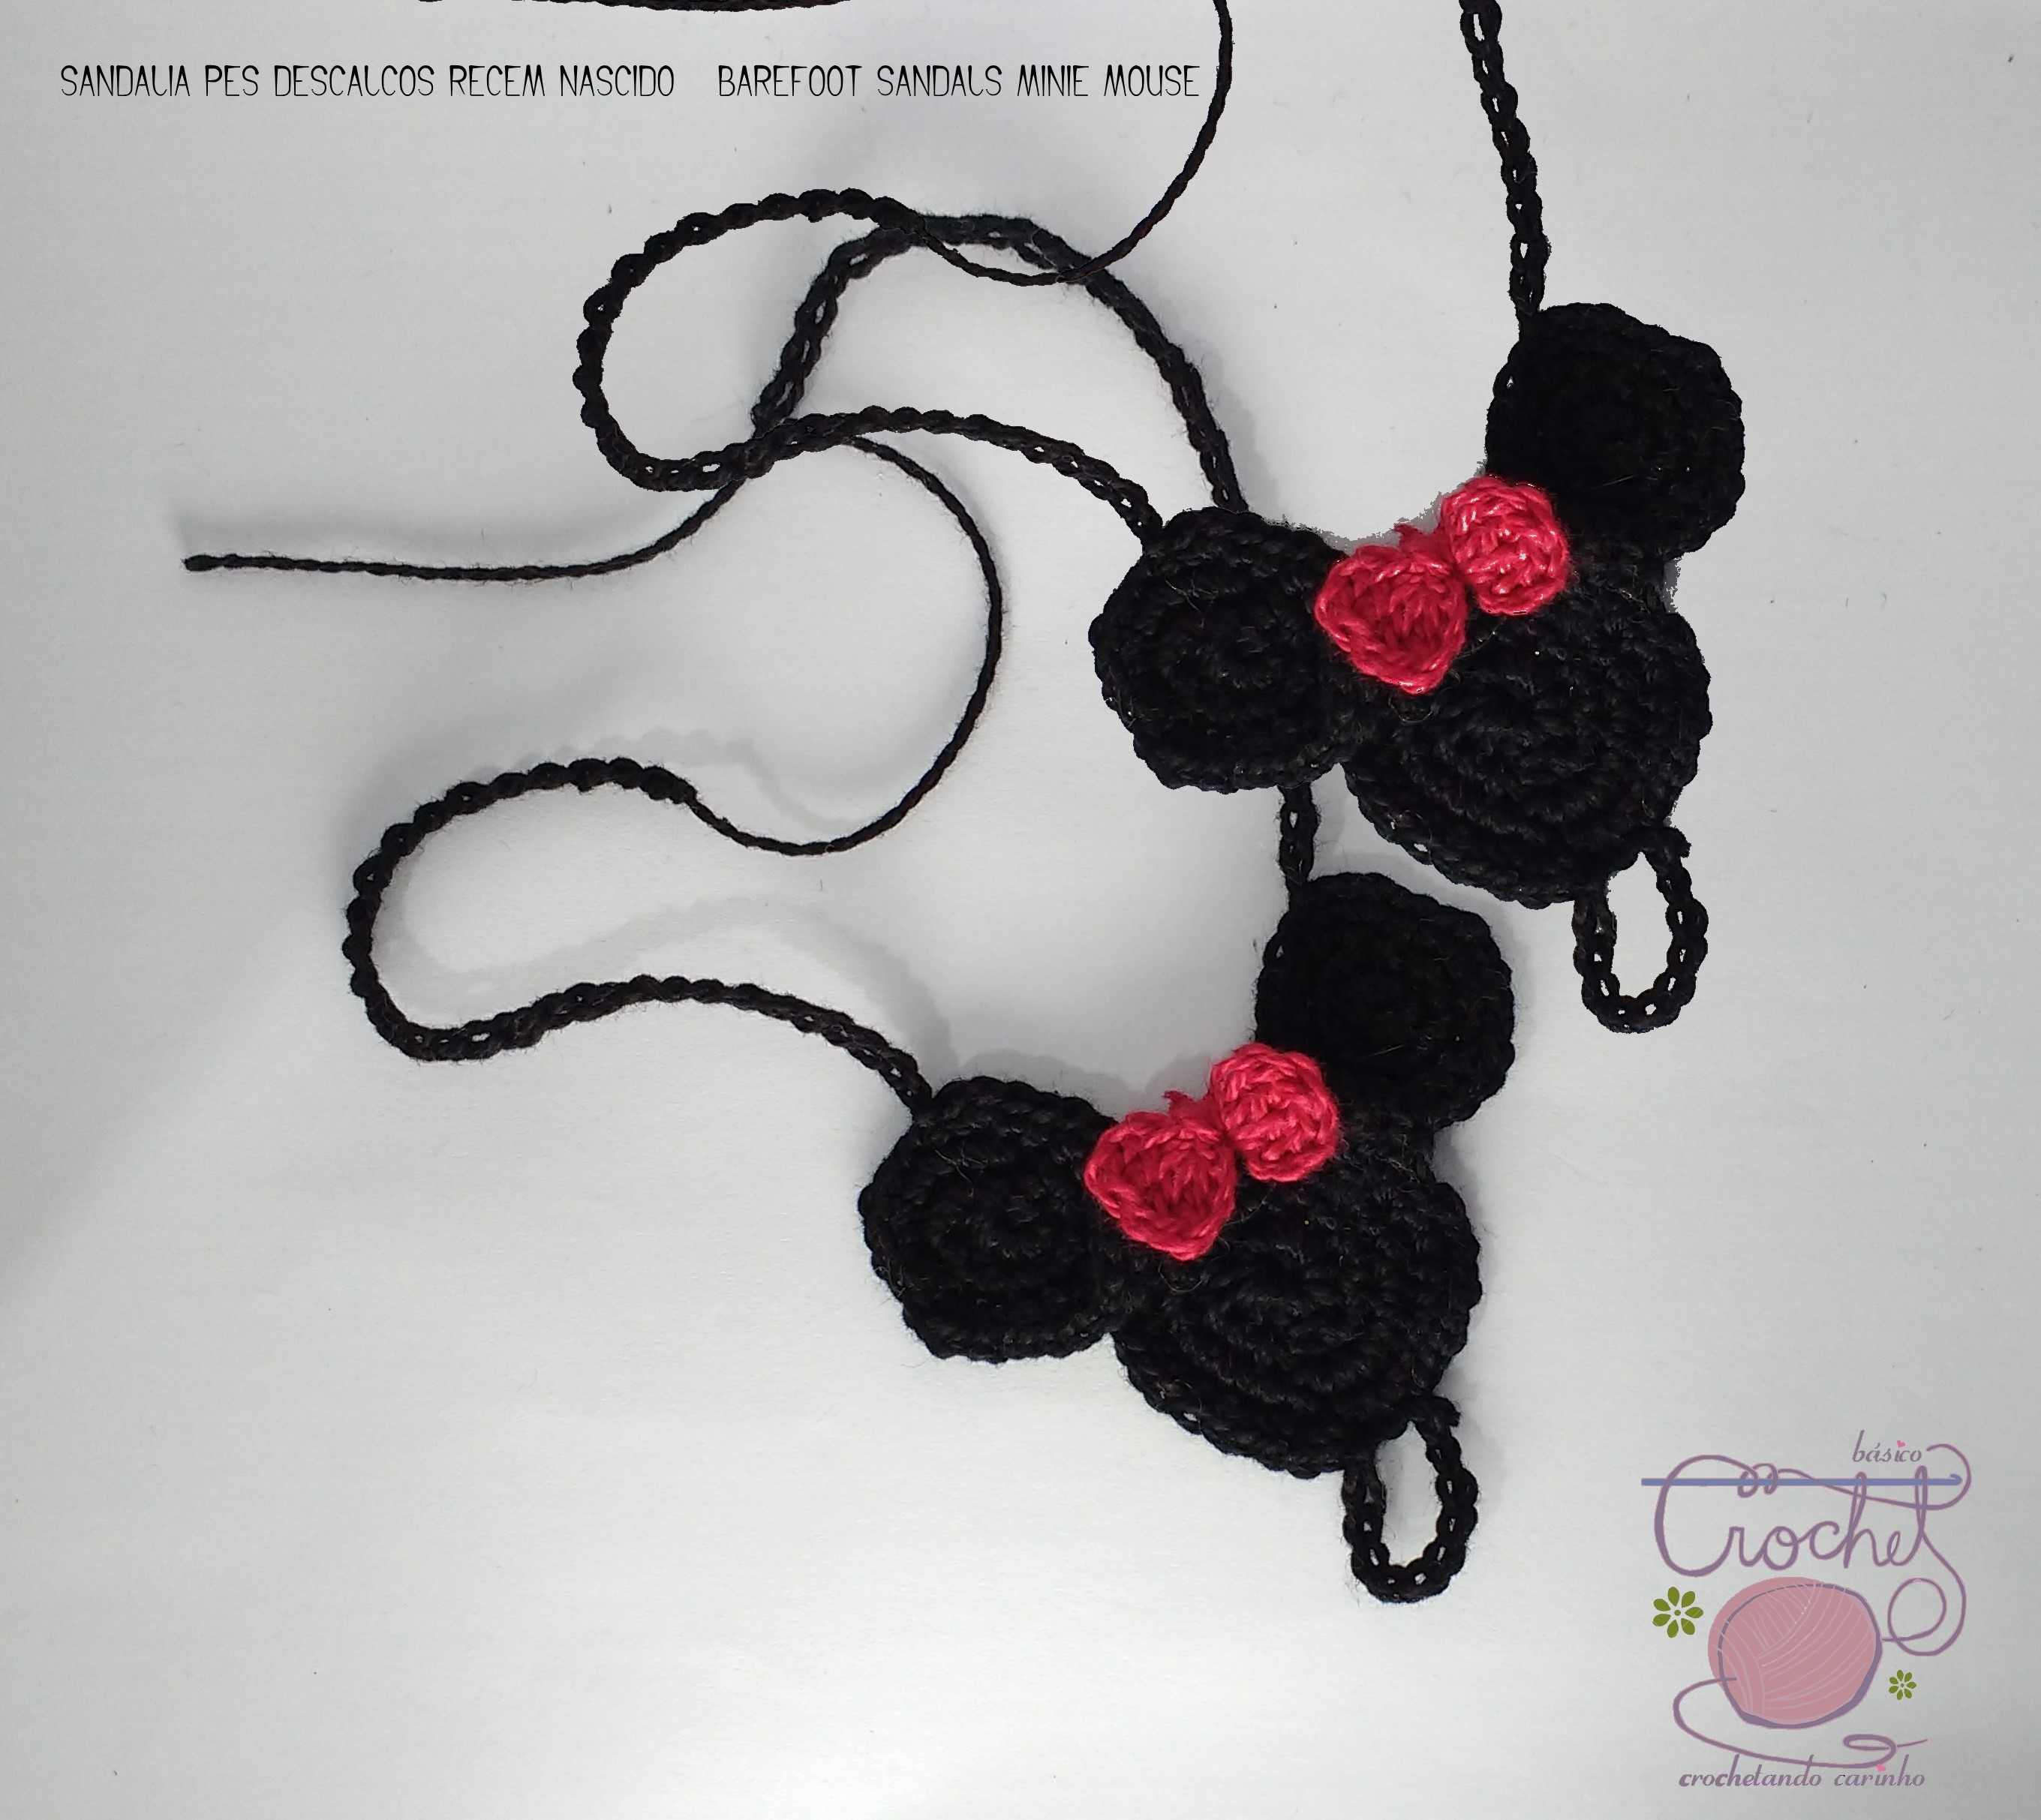 barefoot sandals minie mouse crochet